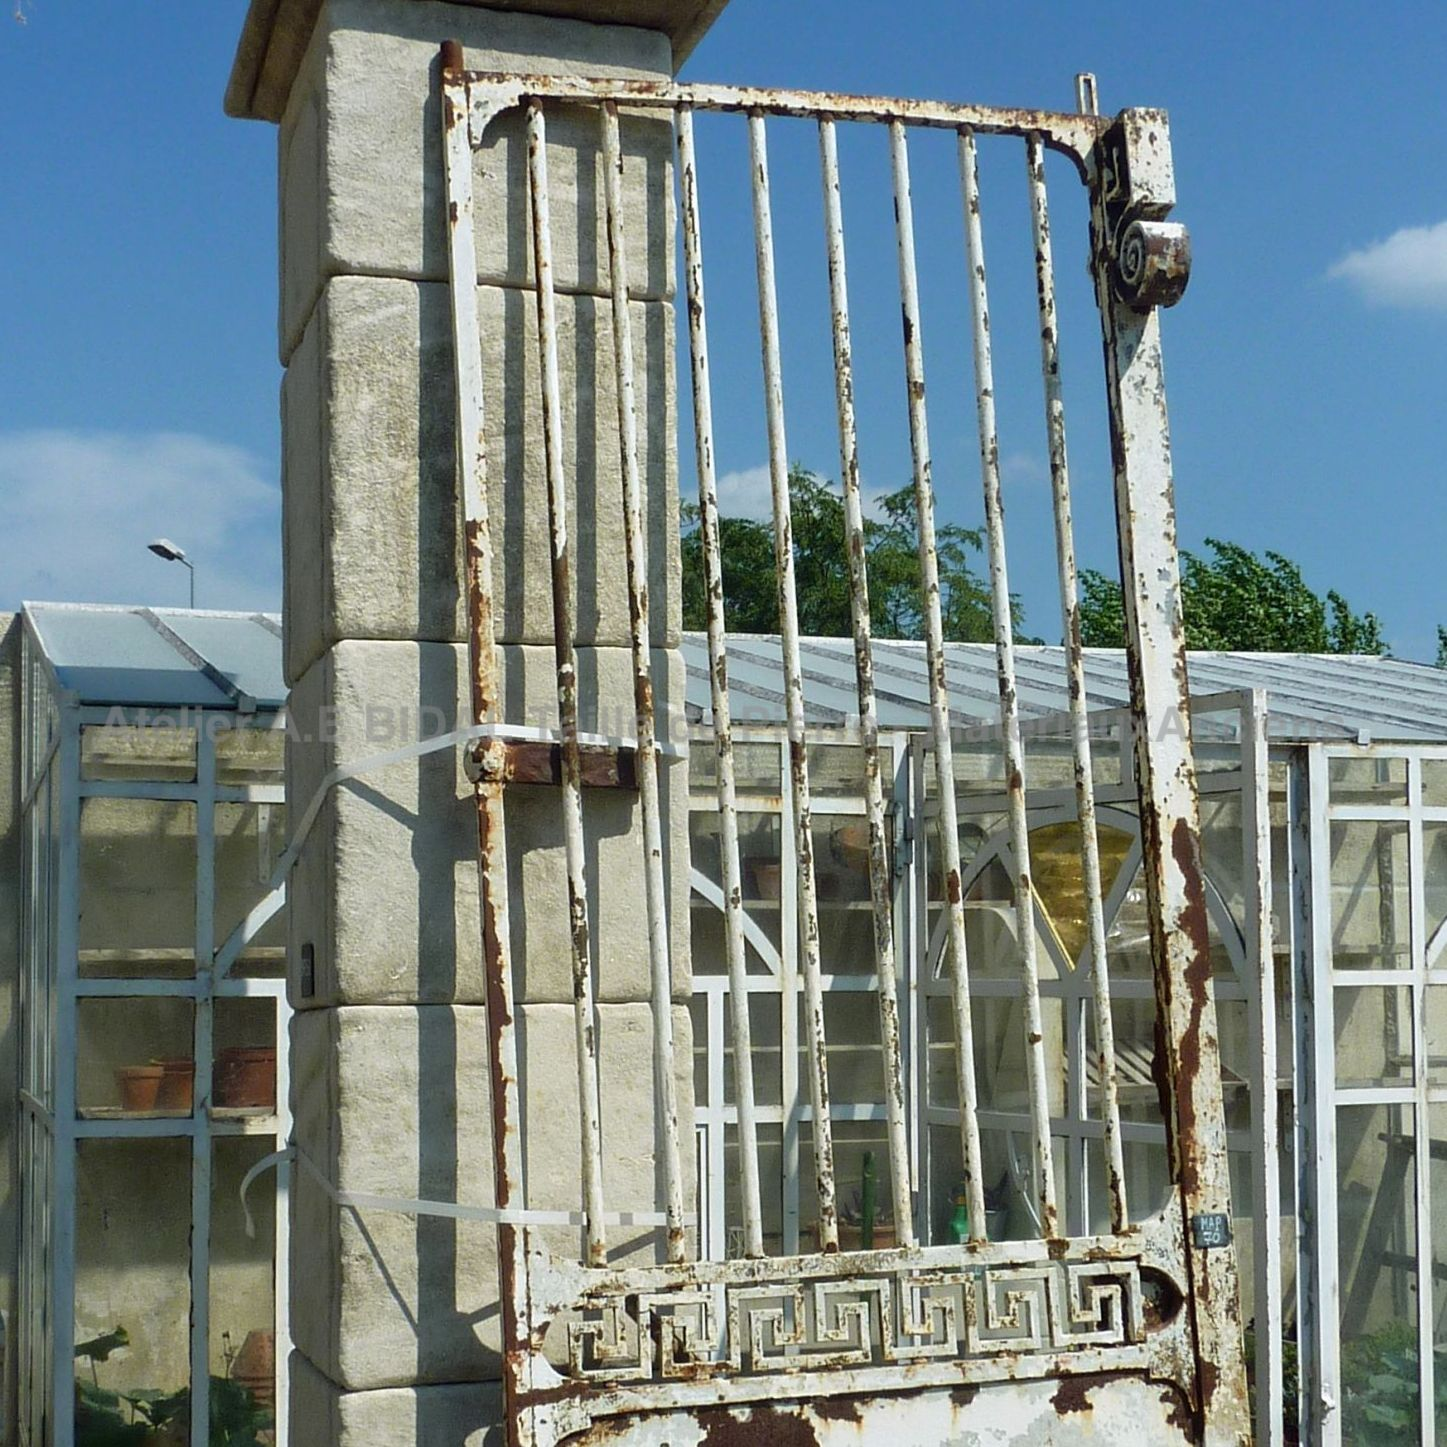 Old wrought iron gate craftmade with beautiful hadnmade decorations.